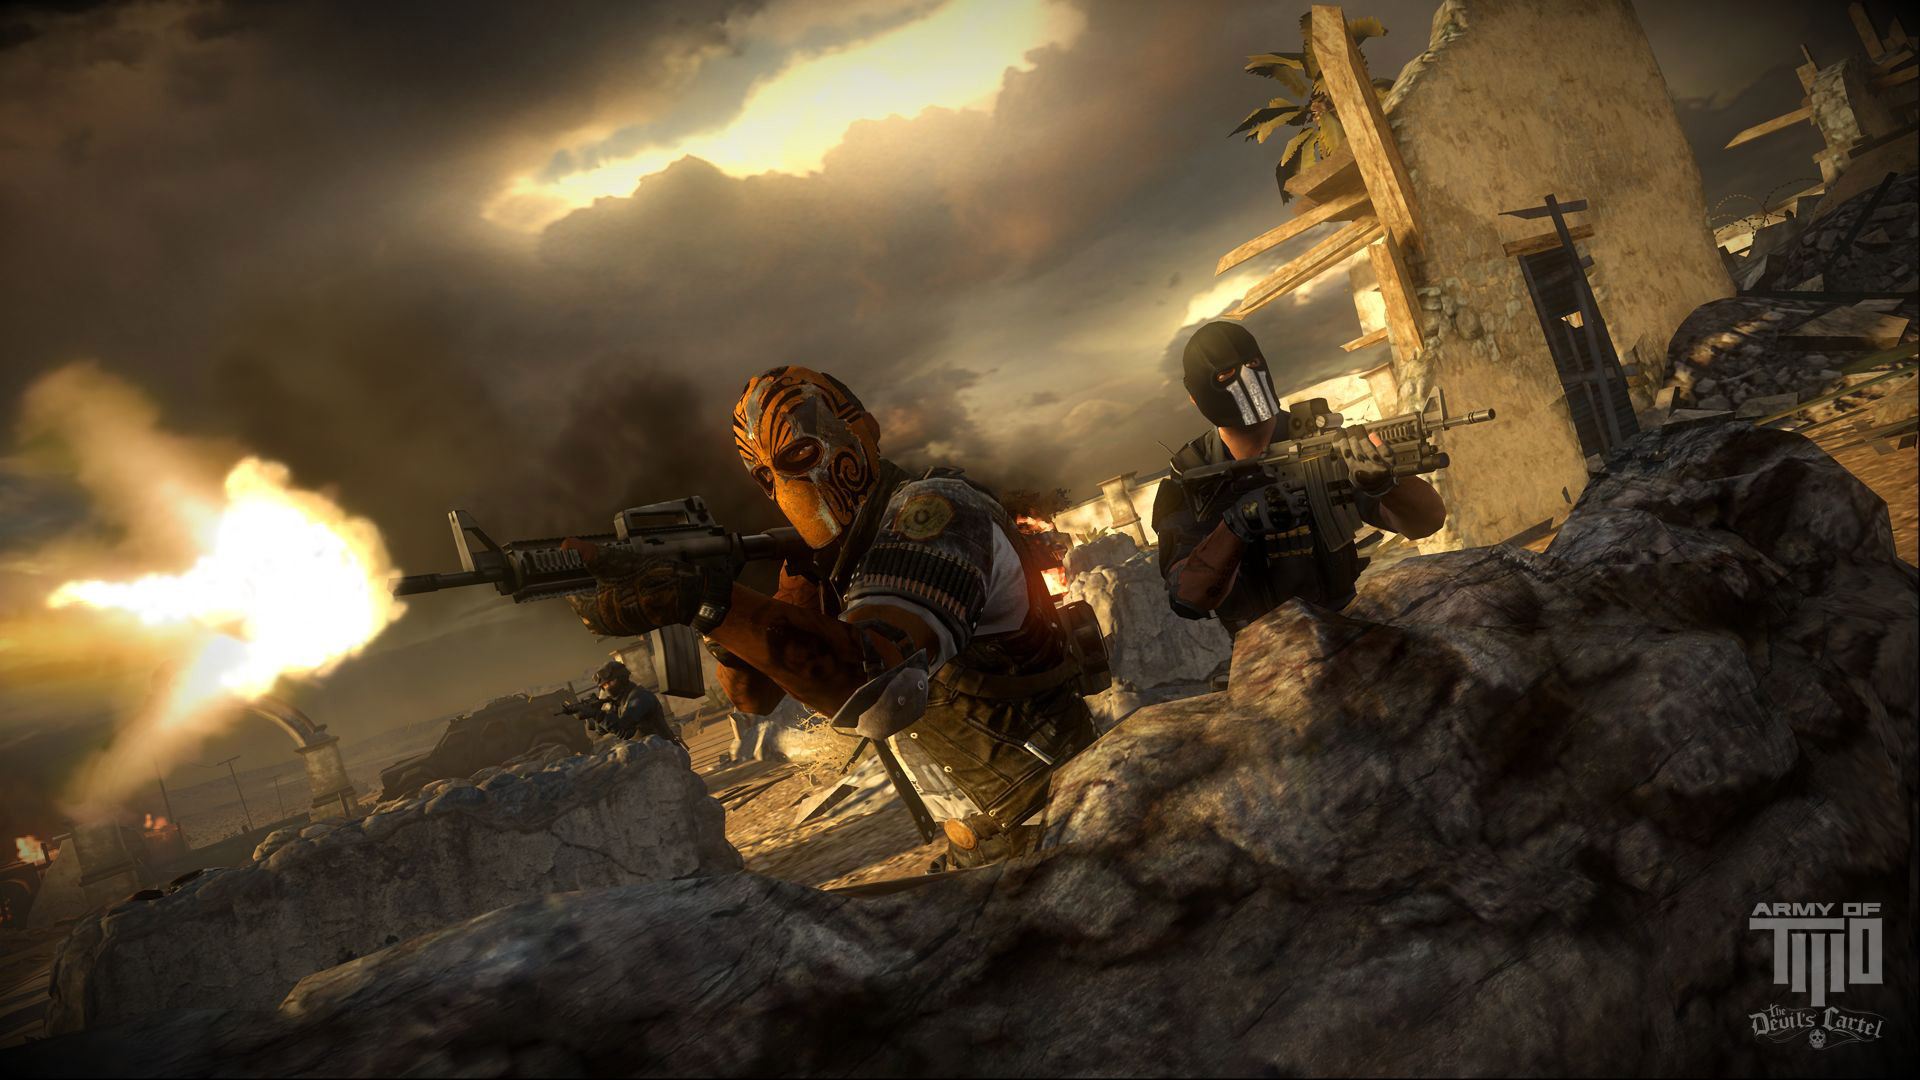 Army of Two: The Devil's Cartel Wallpaper in 1920x1080